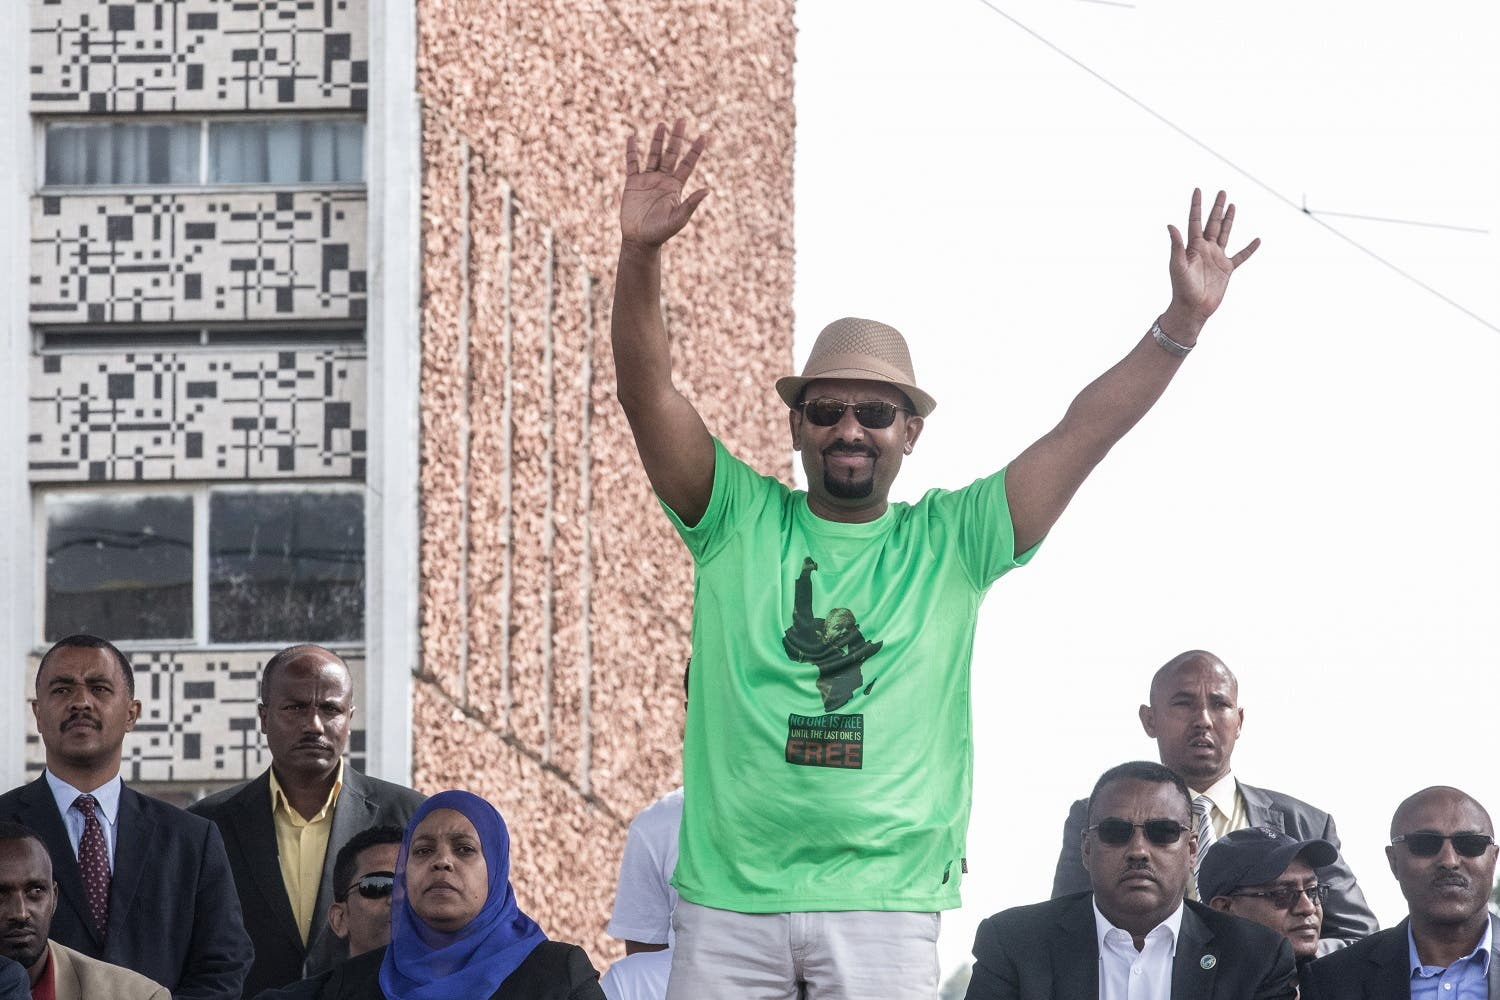 Ethiopia Prime Minister Abiy Ahmed waves to the crowd during a rally on Meskel Square in Addis Ababa on June 23, 2018, before the blast went off at the venue. (AFP)